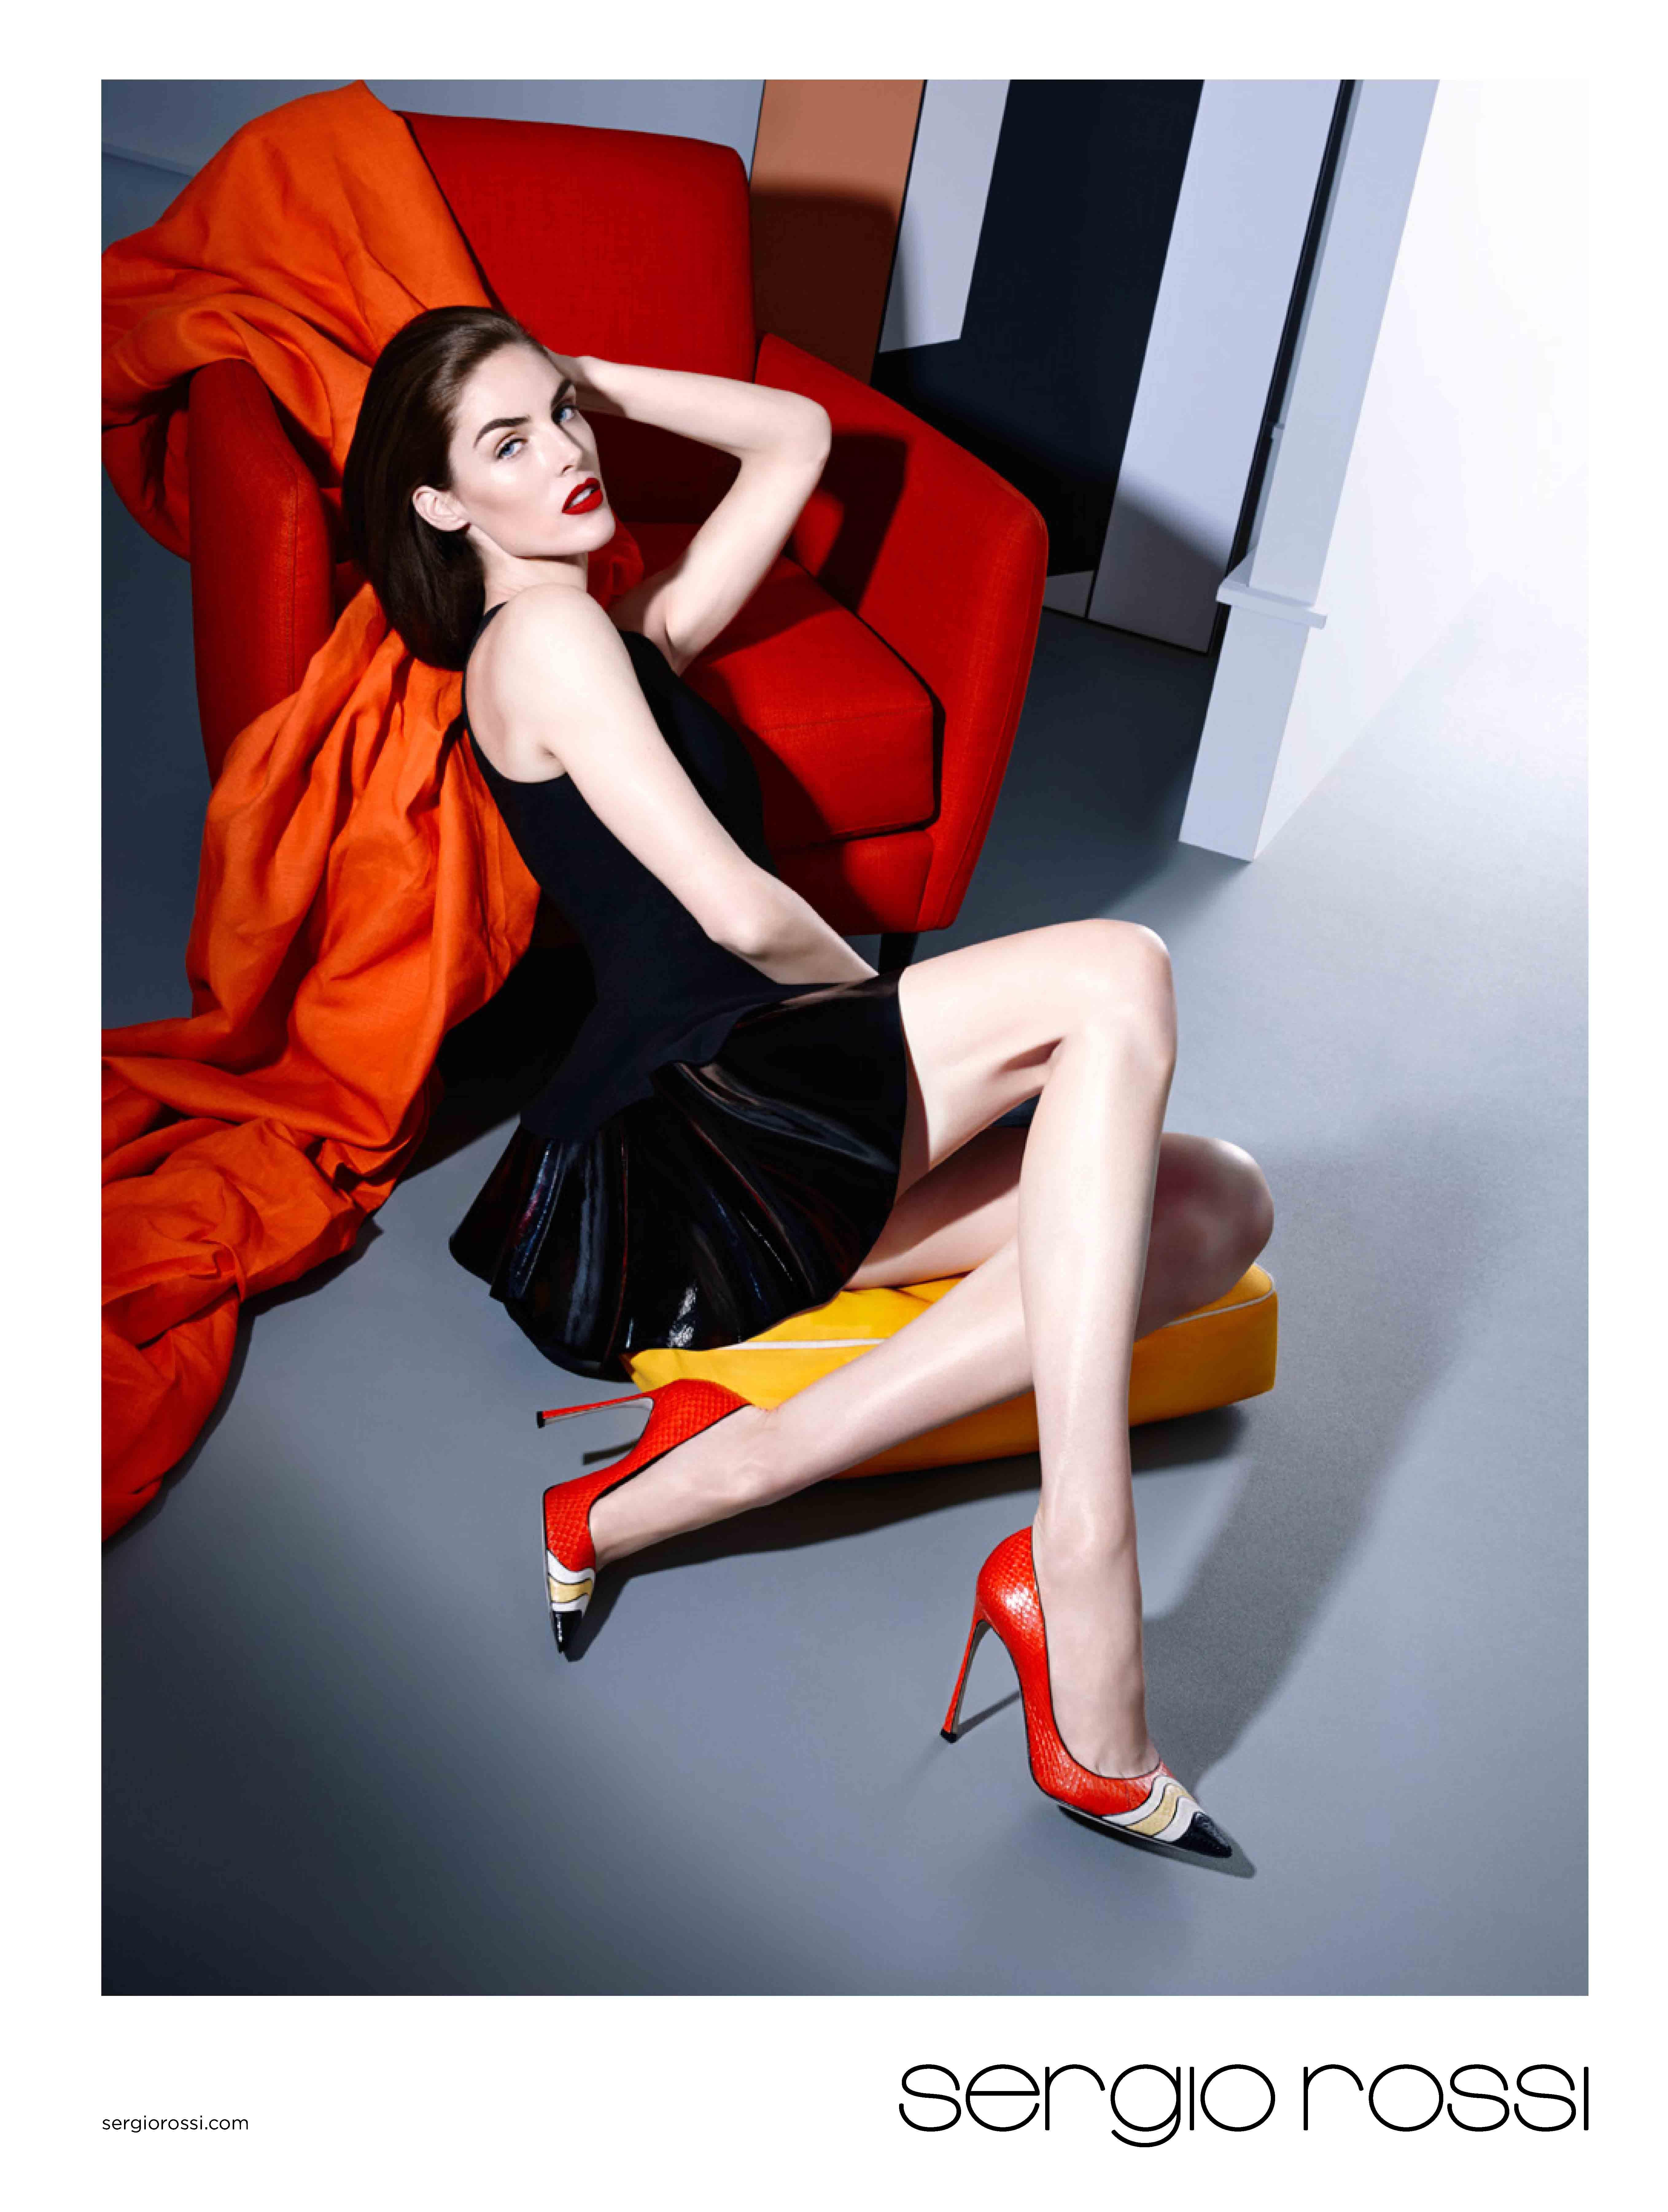 Hilary Rhoda Poses In Latest Sergio Rossi Campaign